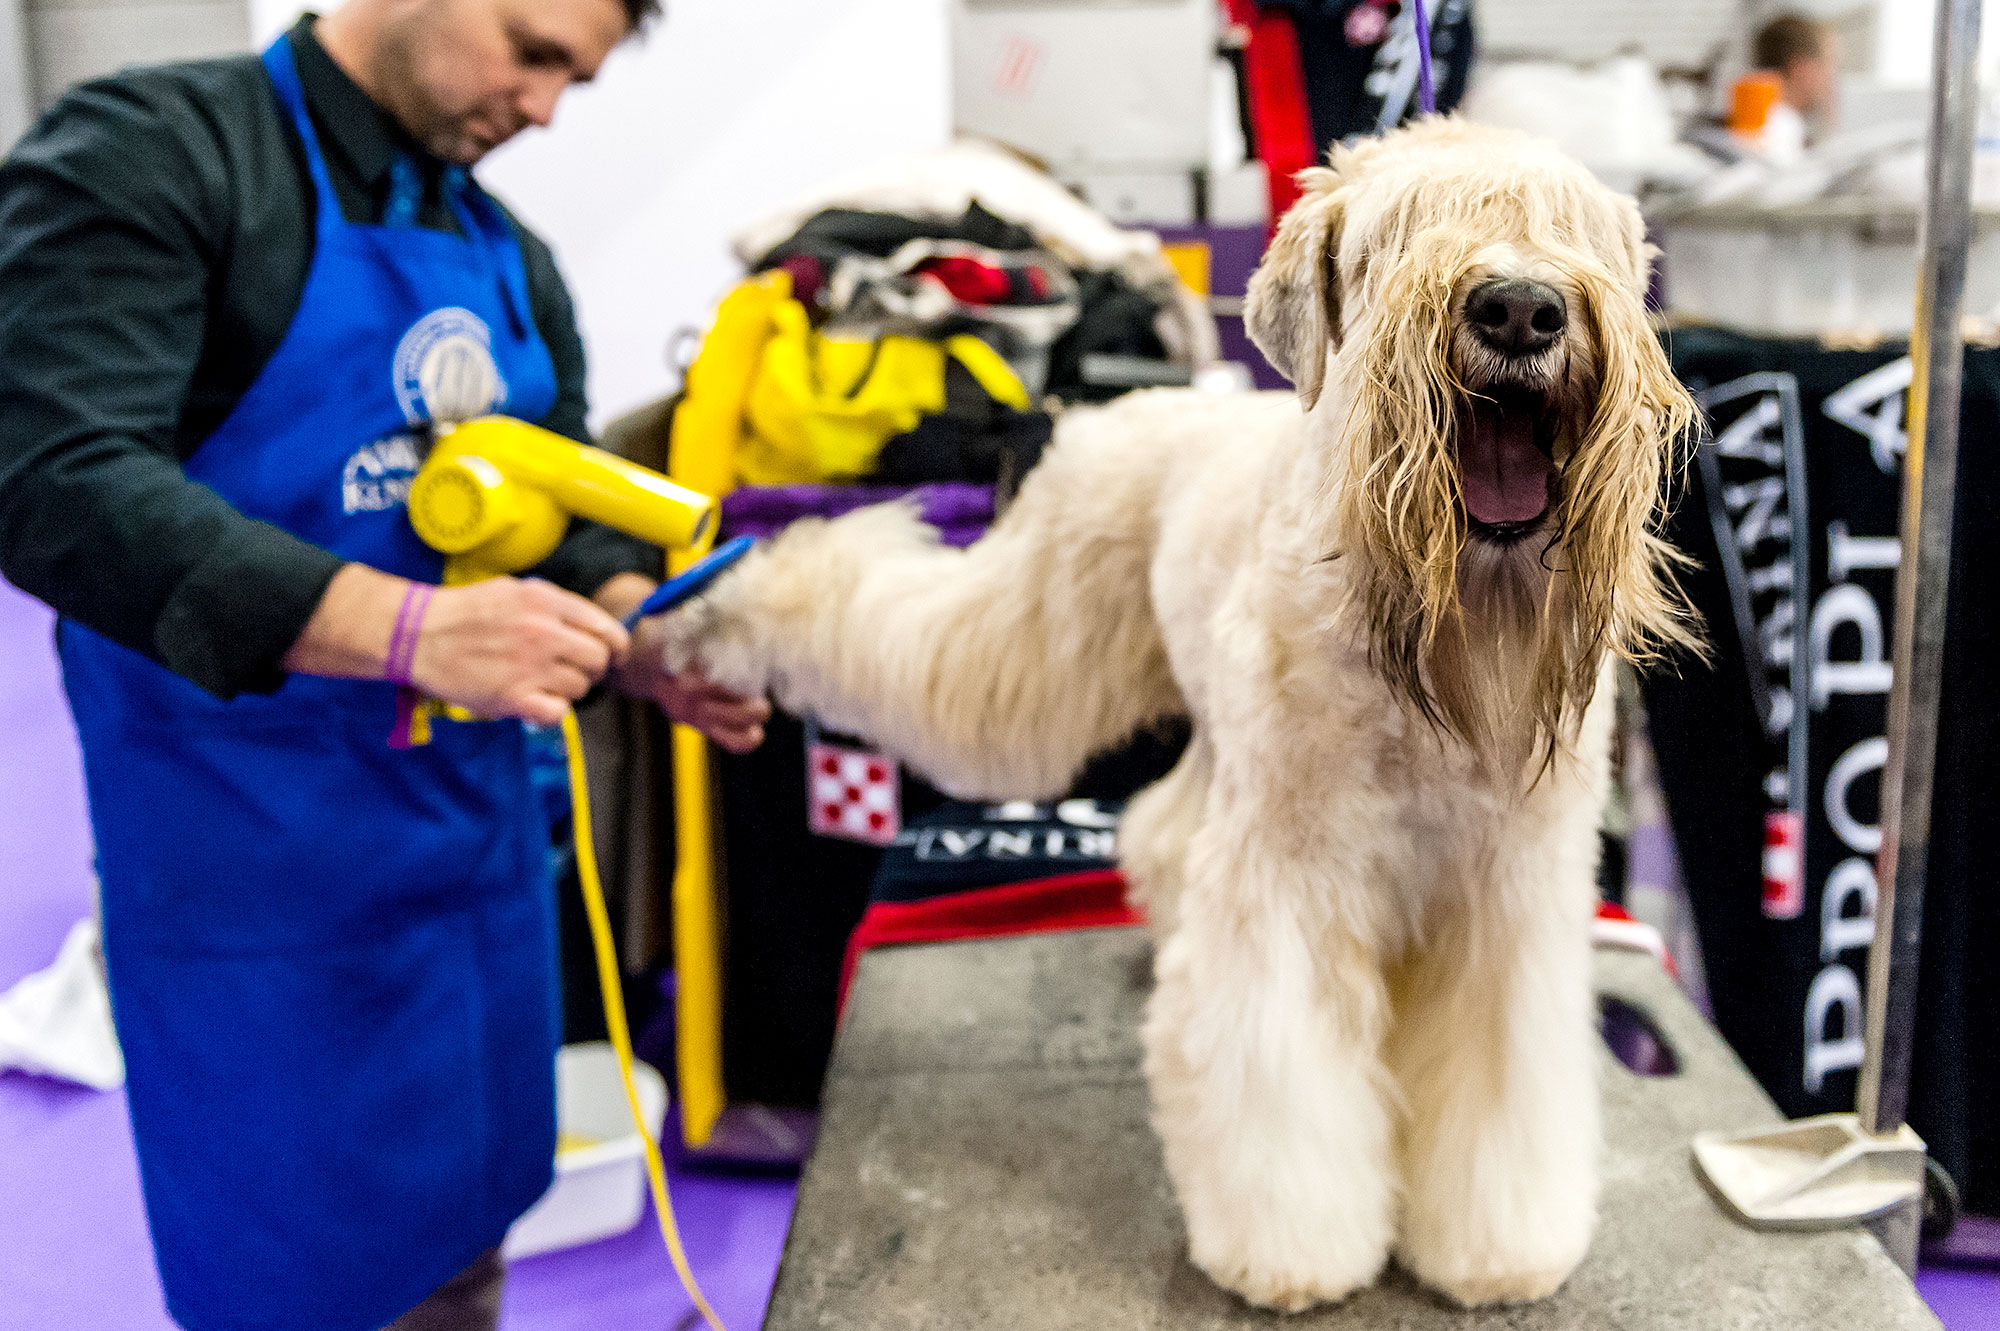 An Irish Terrier gets a wash and blow dry ahead of the judging of the Terrier Group at 141st Westminster Kennel Club Dog Show at Piers 92/94, on February 14, 2017 in New York City.